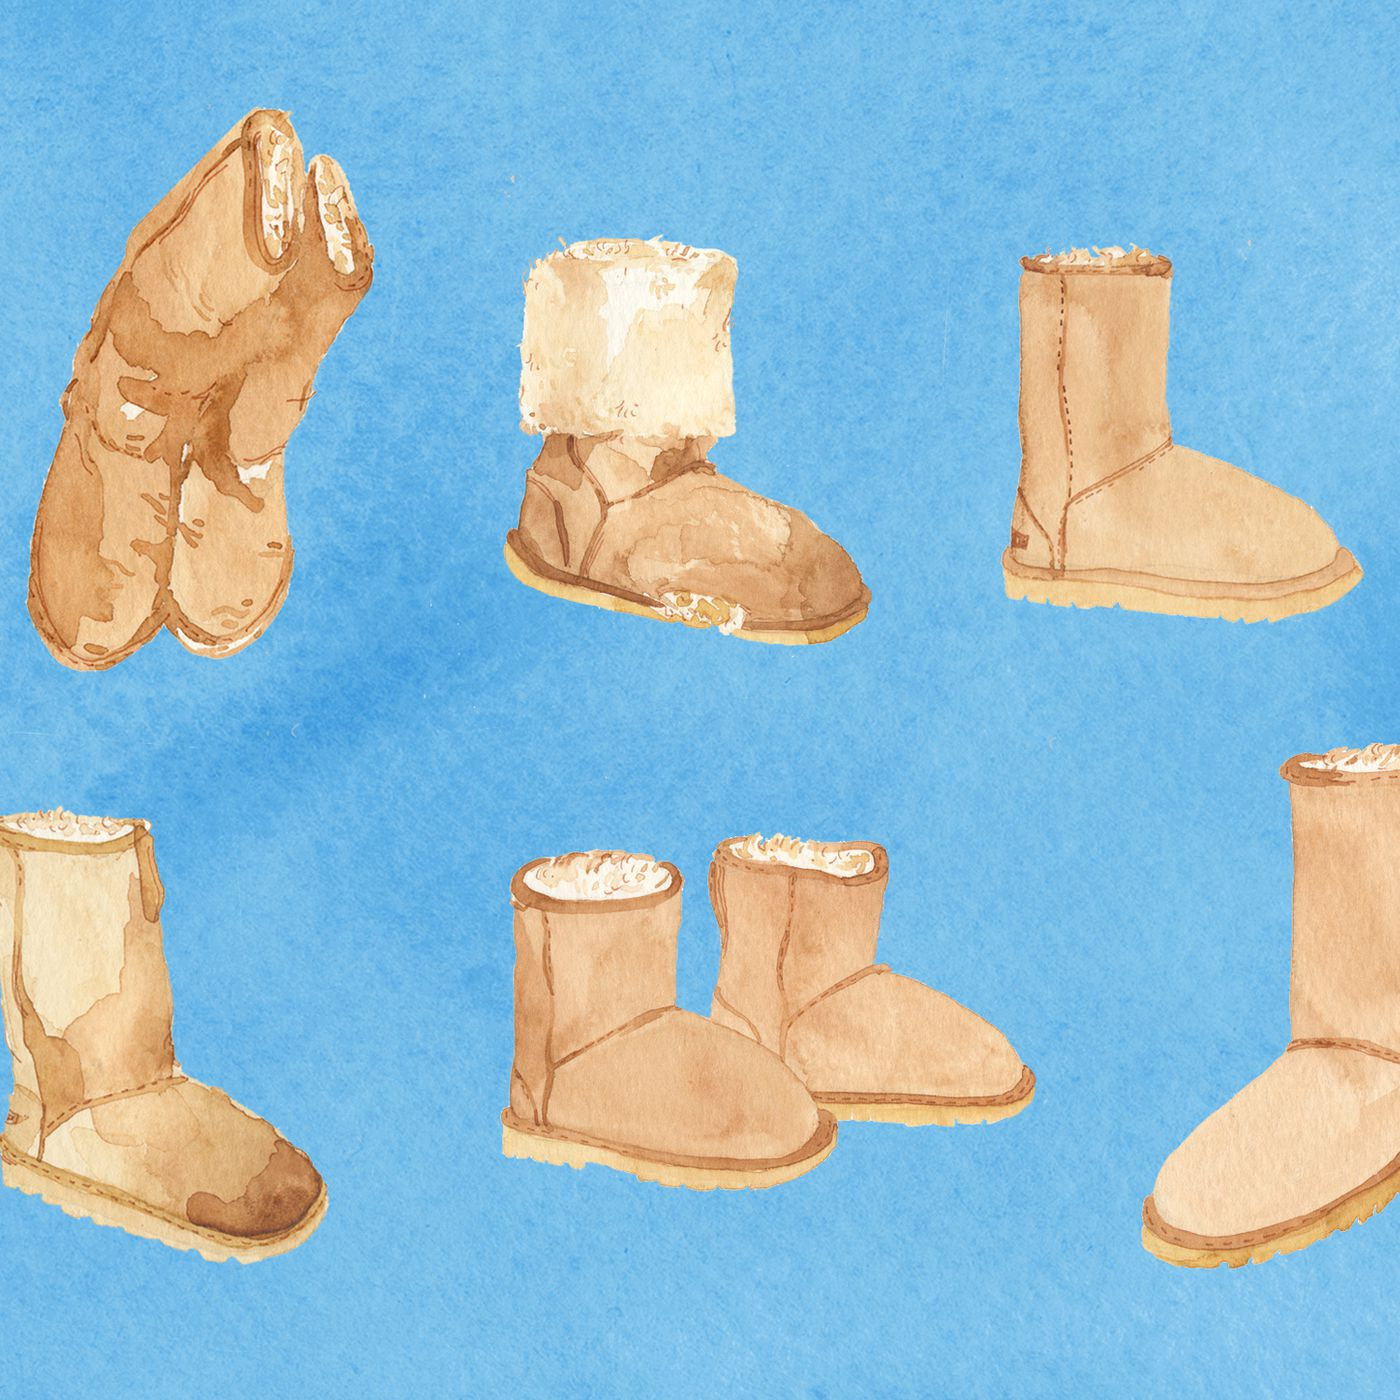 What To Do About Your Grimy Smelly Uggs New